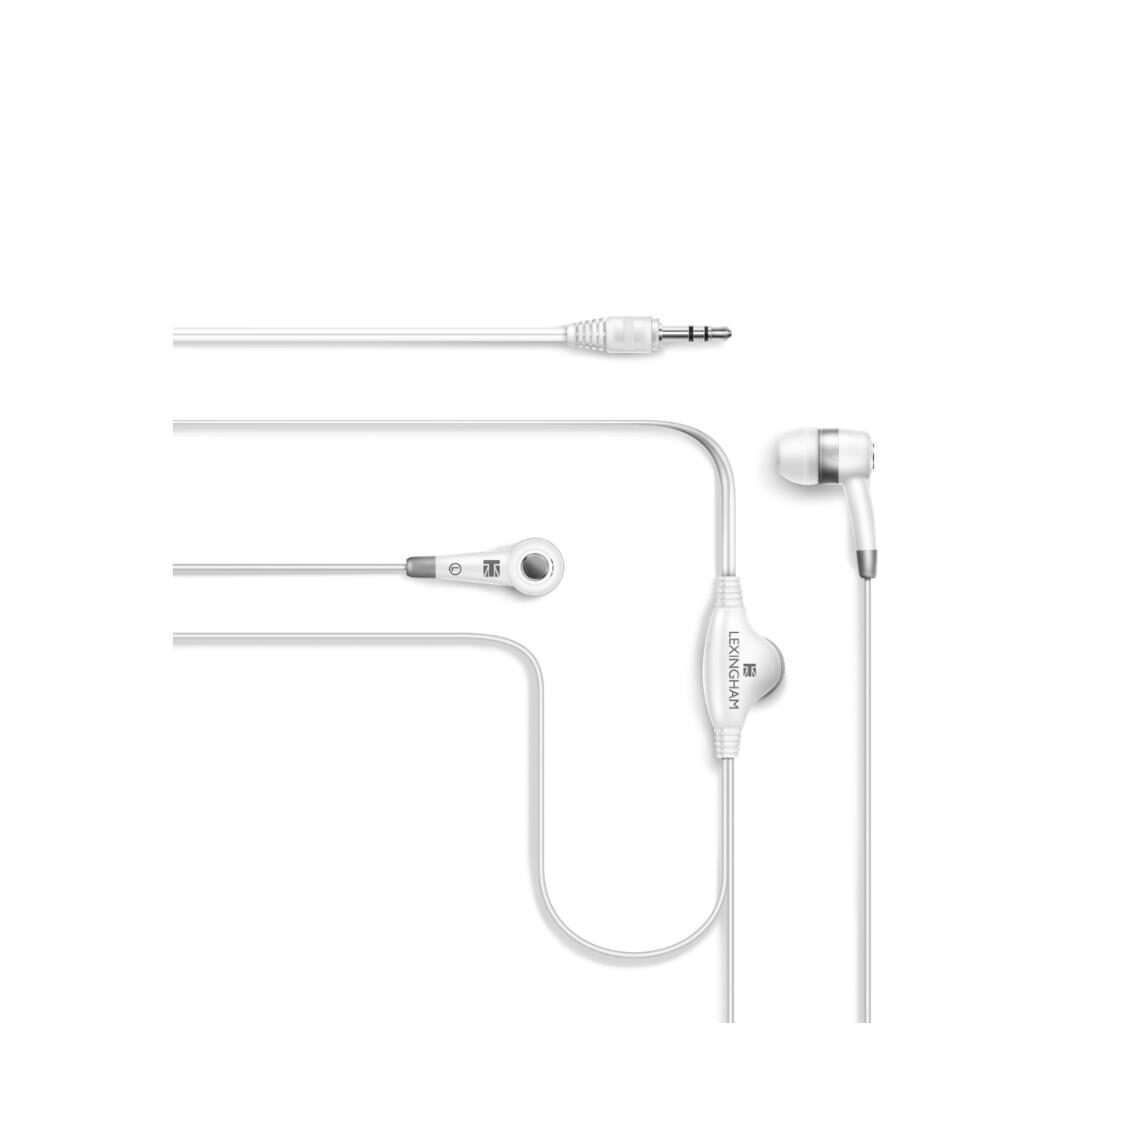 Lexingham Volume Control Ear Phone